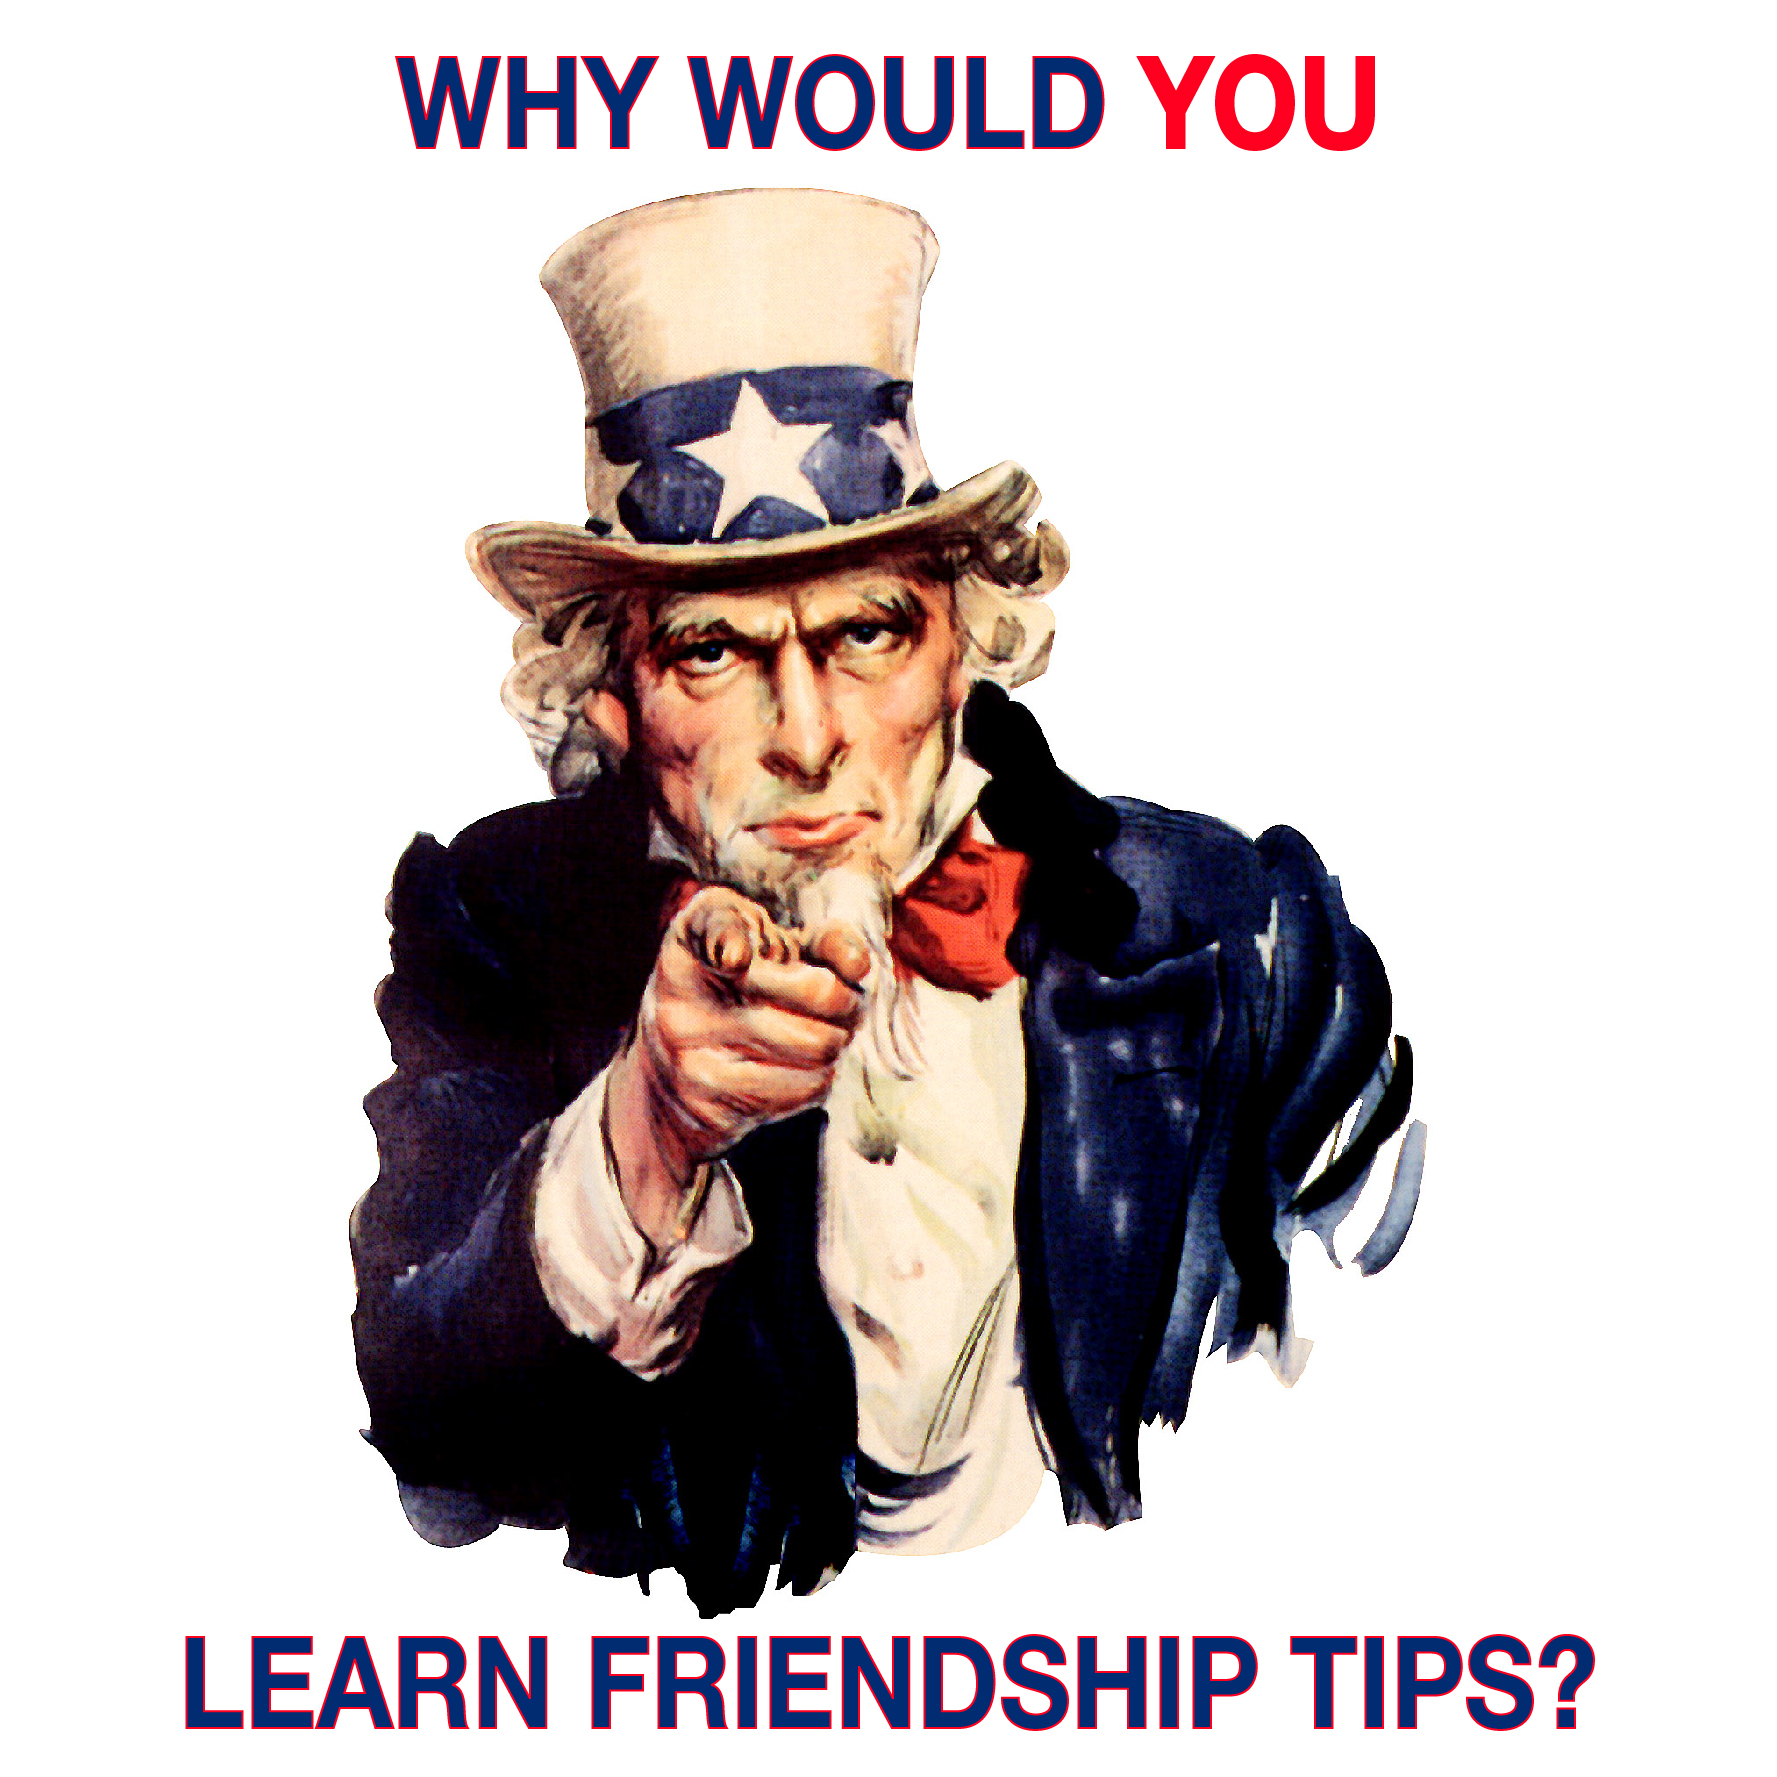 pic : Why would YOU learn friendship tips